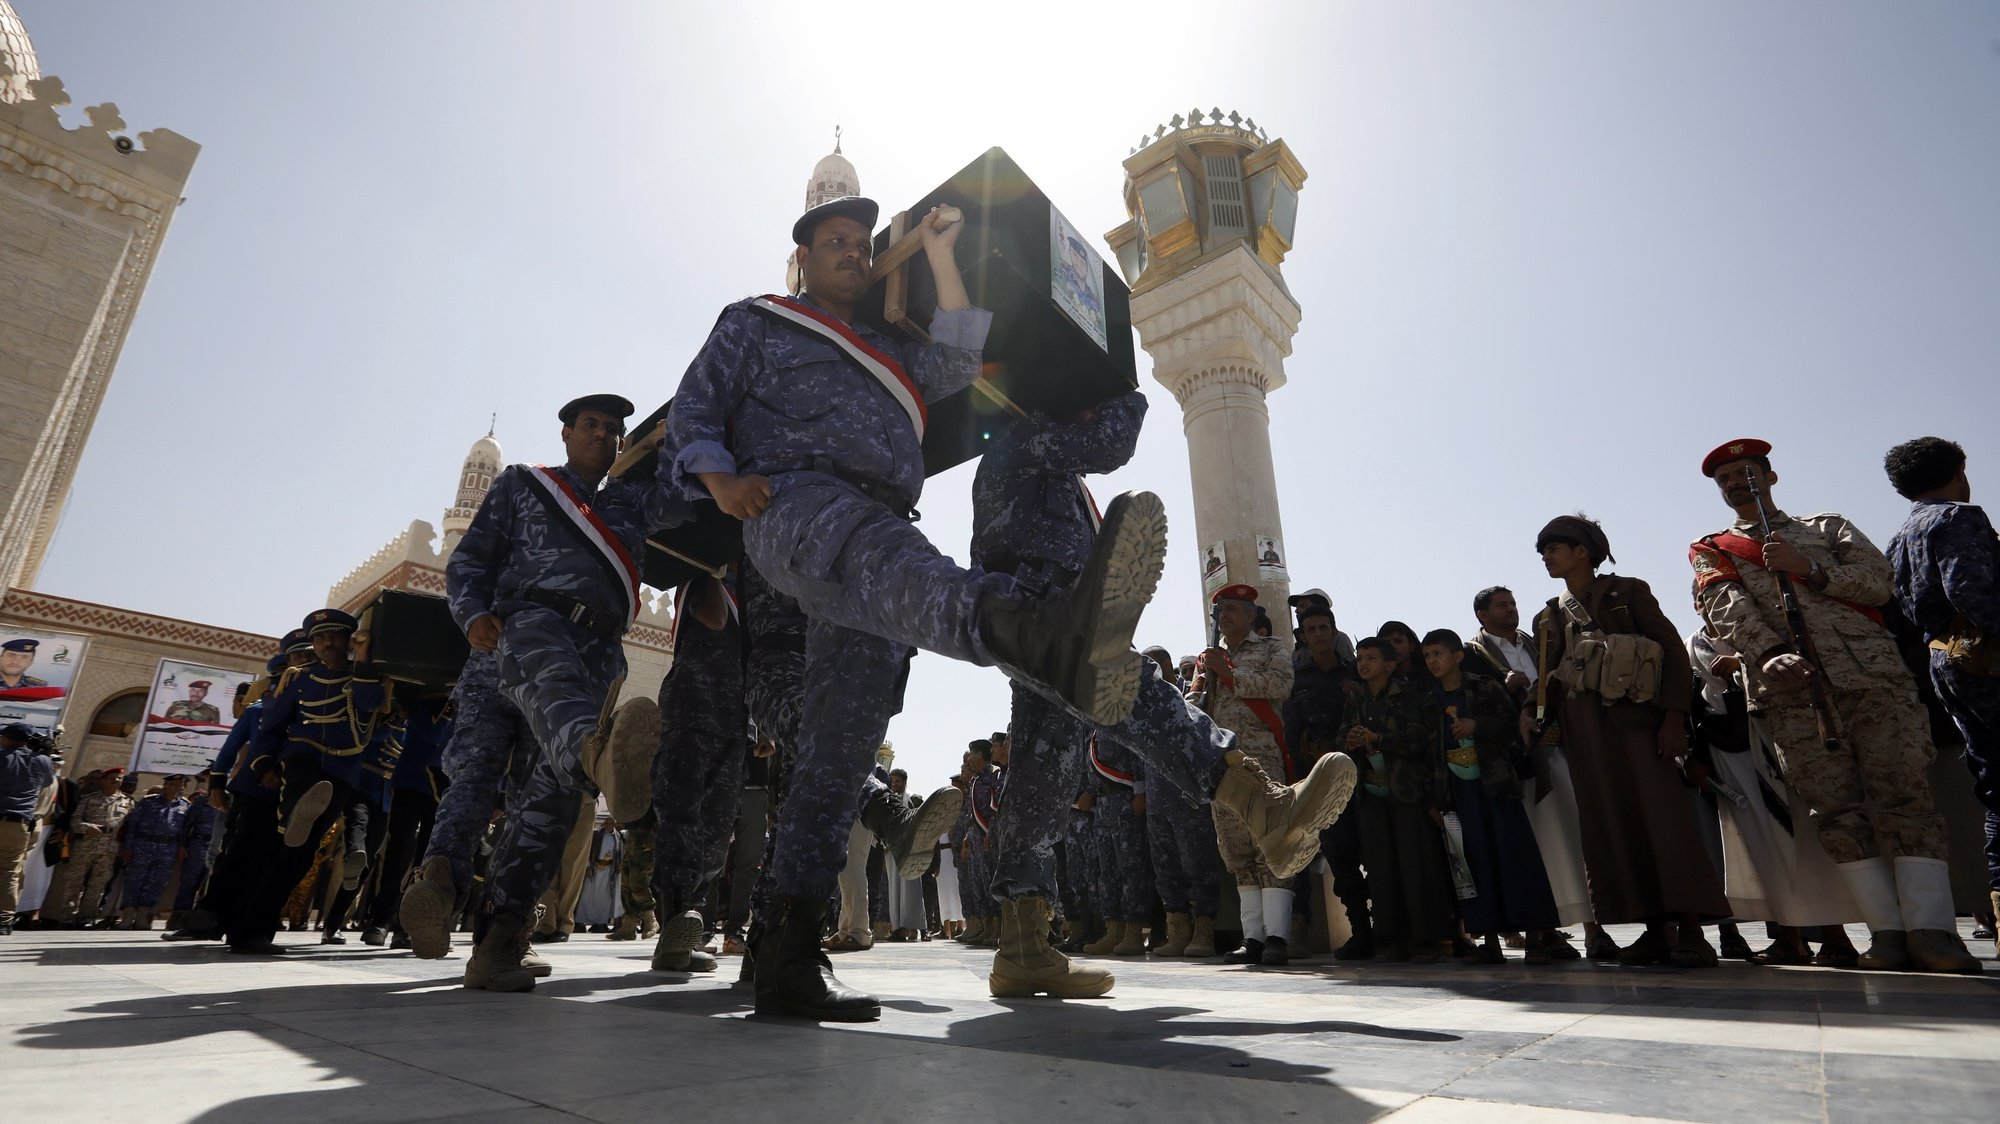 epa09091201 Pro-Houthi soldiers carry the coffins of slain Houthi fighters during a funeral procession a day after a Yemen peace initiative was offered by Saudi Arabia, in Sana'a, Yemen, 23 March 2021. Saudi Arabia has offered a peace initiative to the Houthis in Yemen, including a ceasefire and the reopening of Sana'a airport. A Saudi-led coalition has been fighting the Houthis since March 2015.  EPA/YAHYA ARHAB